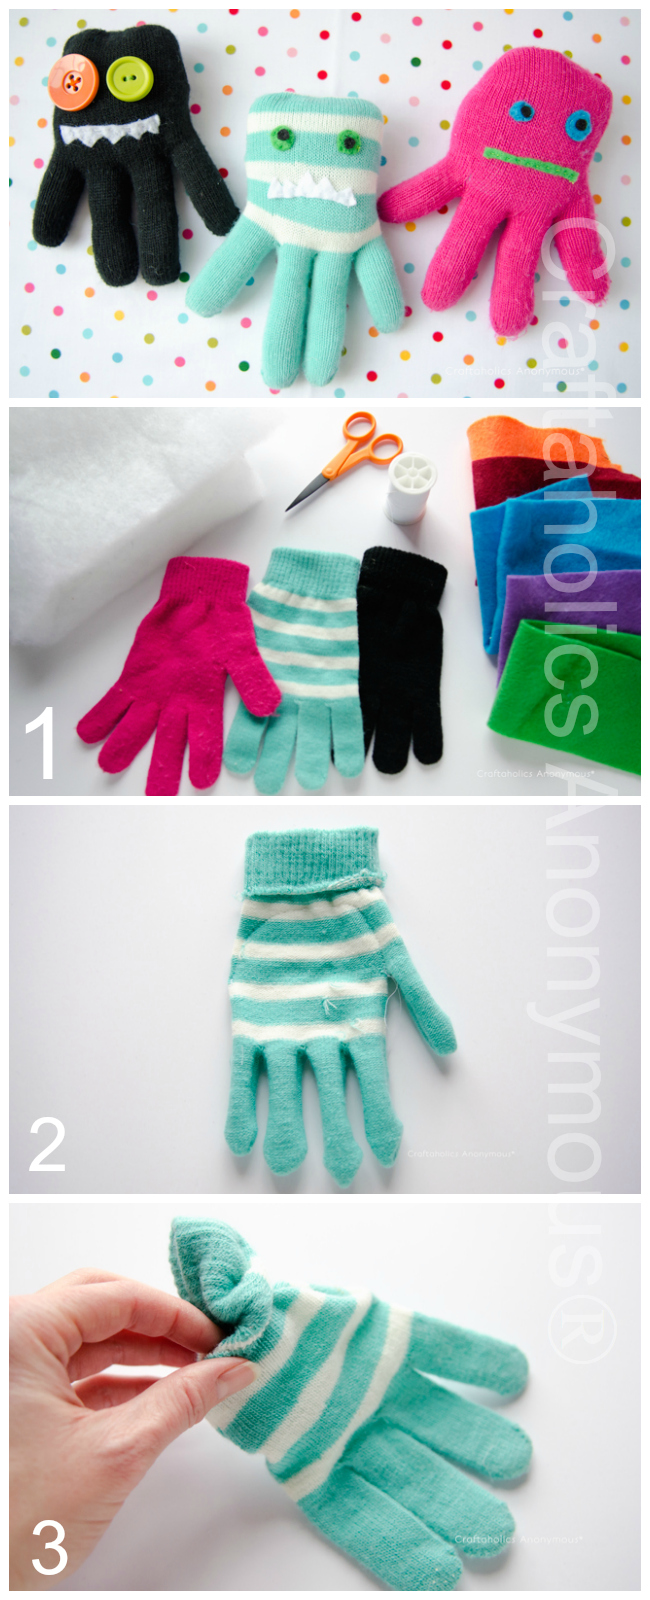 https://i2.wp.com/www.craftaholicsanonymous.net/wp-content/uploads/2014/01/how-to-make-glove-monsters1.jpg